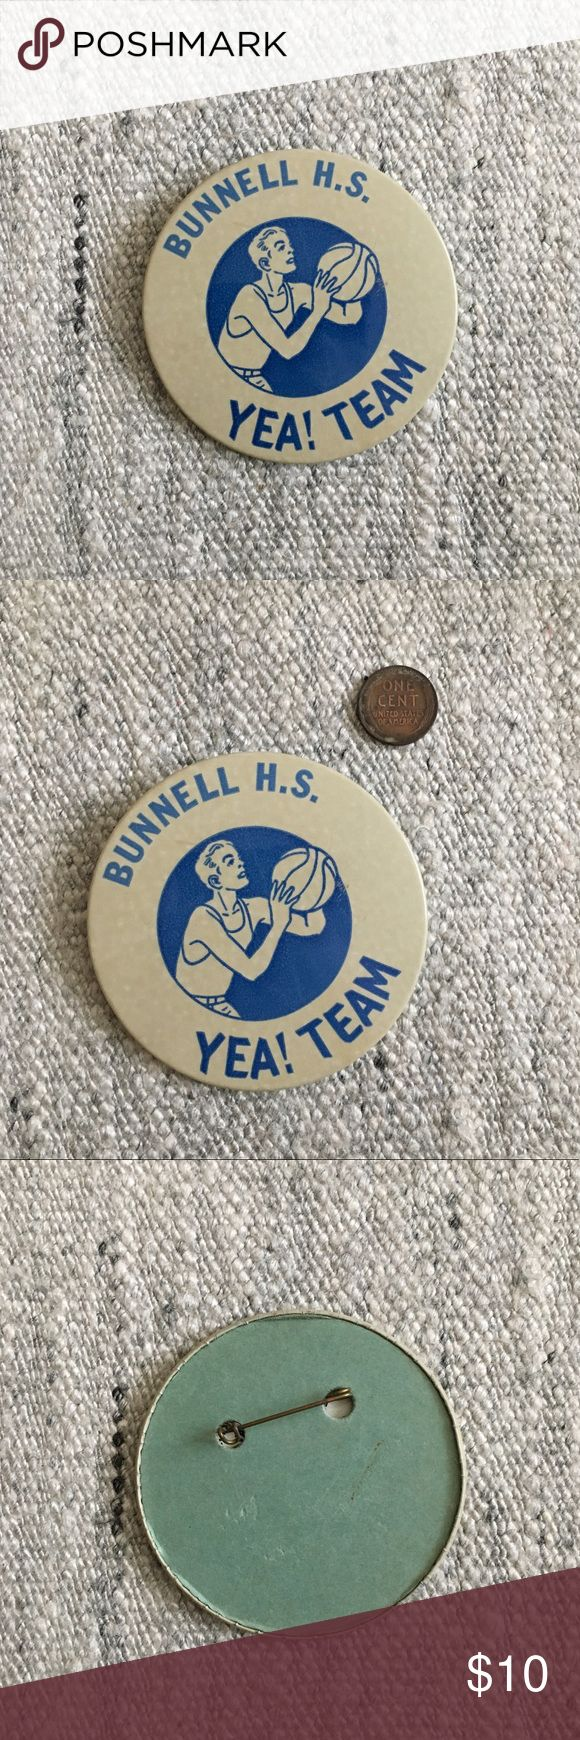 """'60s / Bunnell High School Button """"Bunnell H.S. Yea Team!"""" button circa 60s. Located in Stratford, Connecticut. Established in 1960, this pinback is definitely from the first few years it was open. The bigger the bundle the bigger the discount, I have lots of buttons for sale -- add your favorites to a bundle and I'll send you an offer ✌🏼  *Penny shown for scale. ☒ I do not model or trade, sorry! ❁ Check out my closet for more pins and buttons!  {lapel, hat pin, badge, button, pinback}…"""